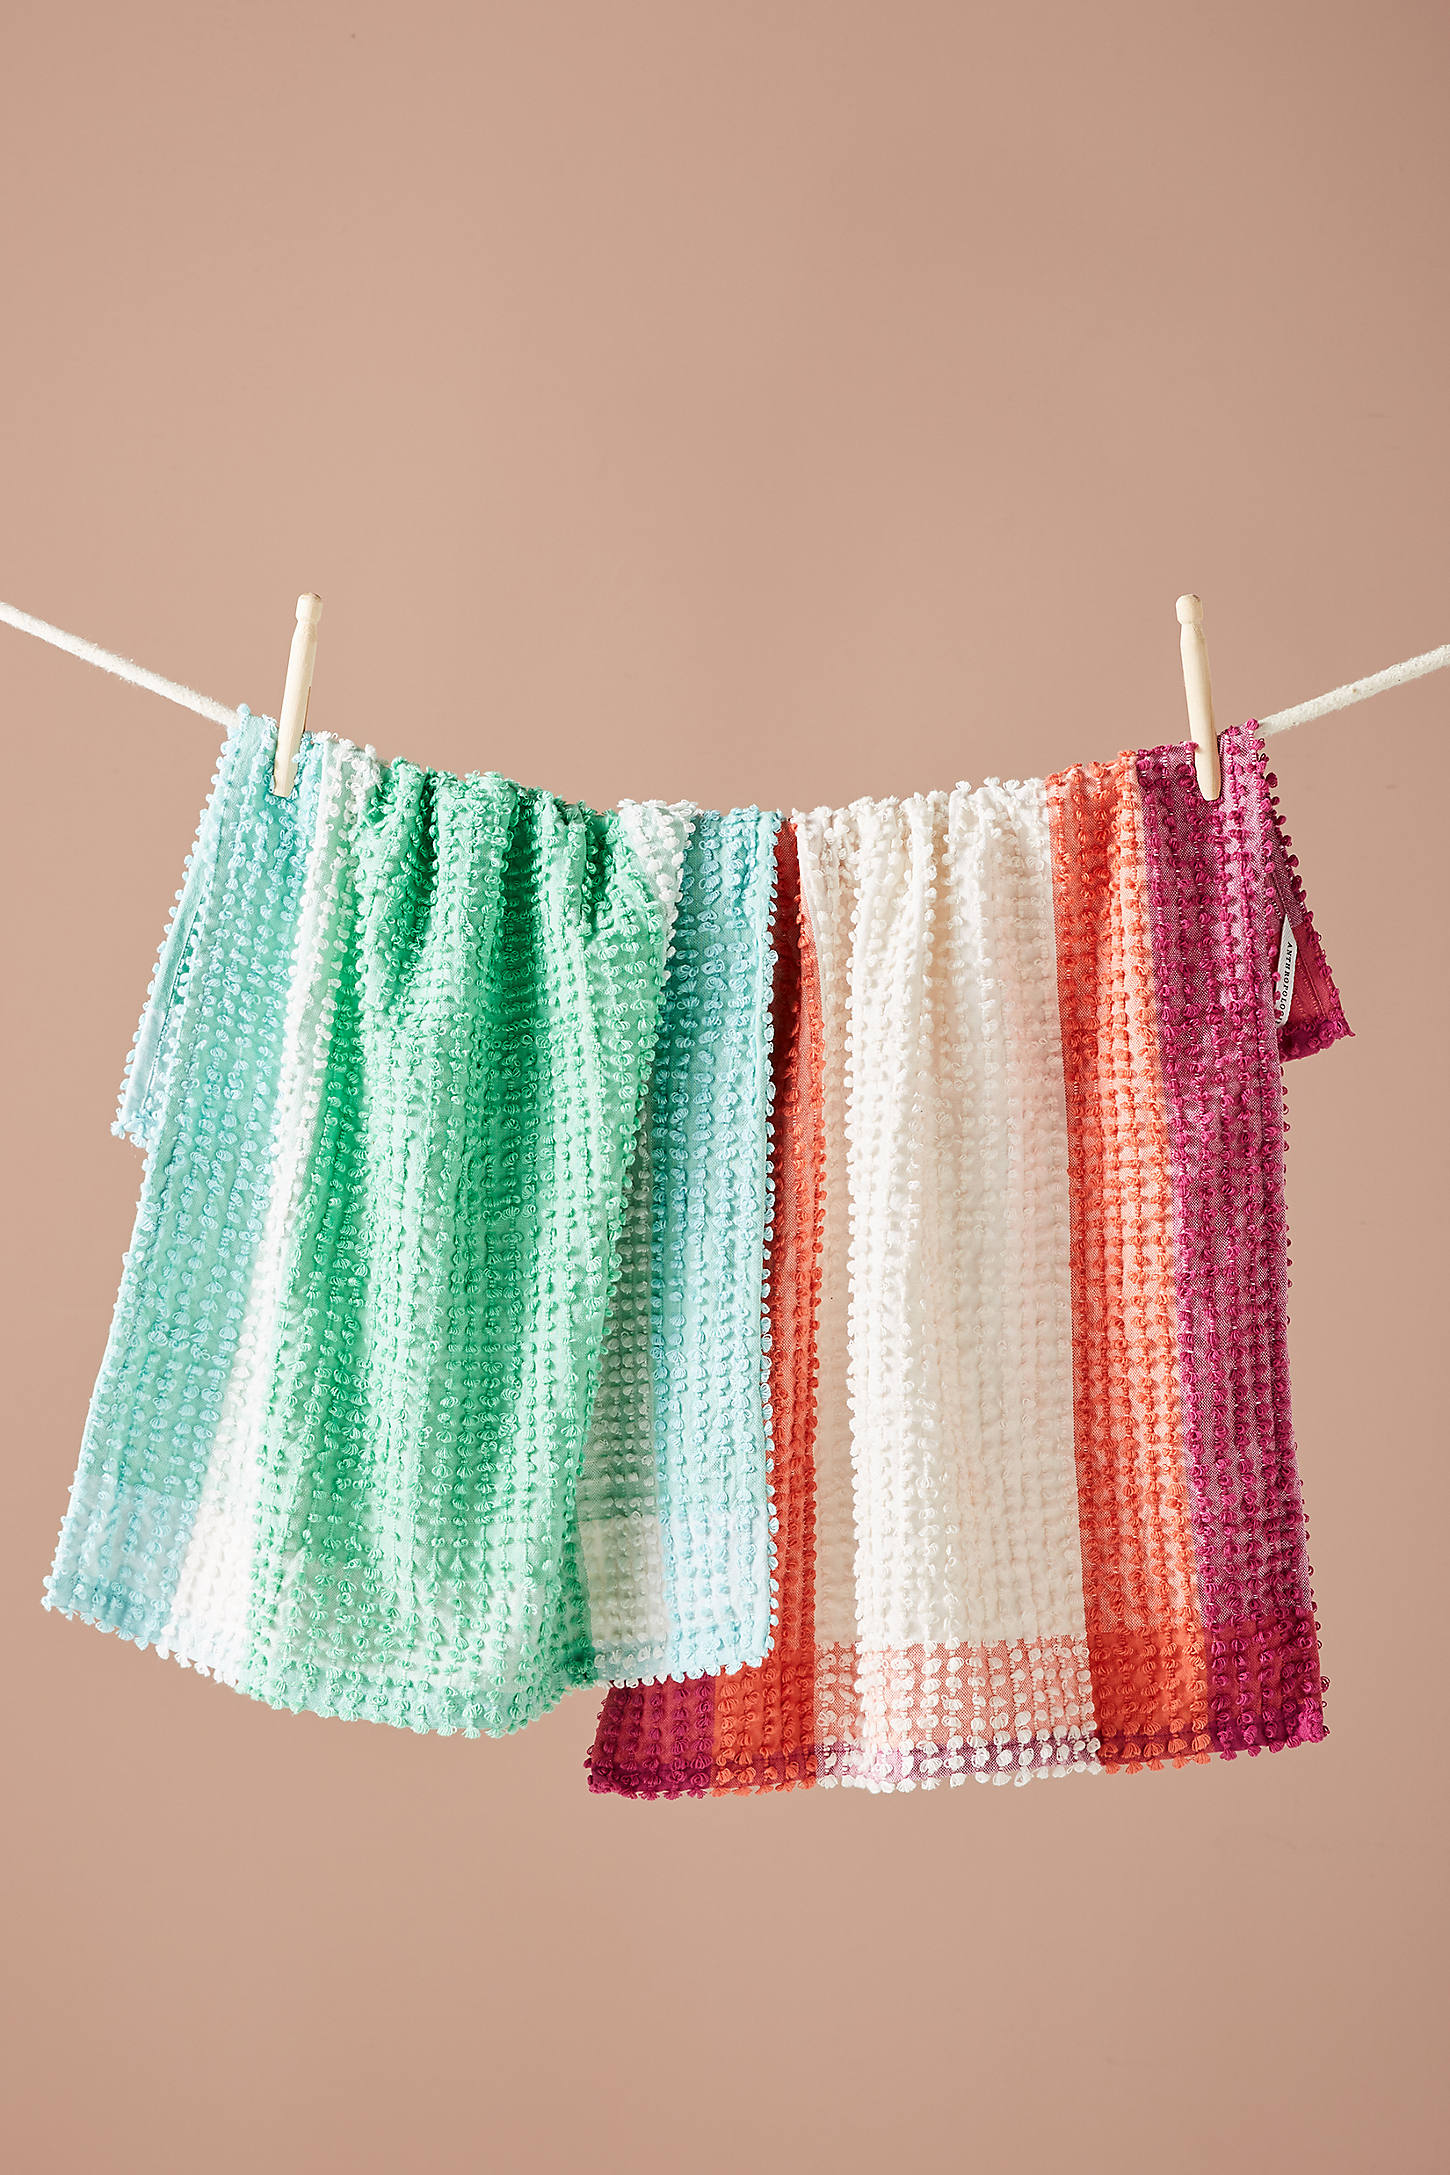 Textured Gingham Dish Towel Set